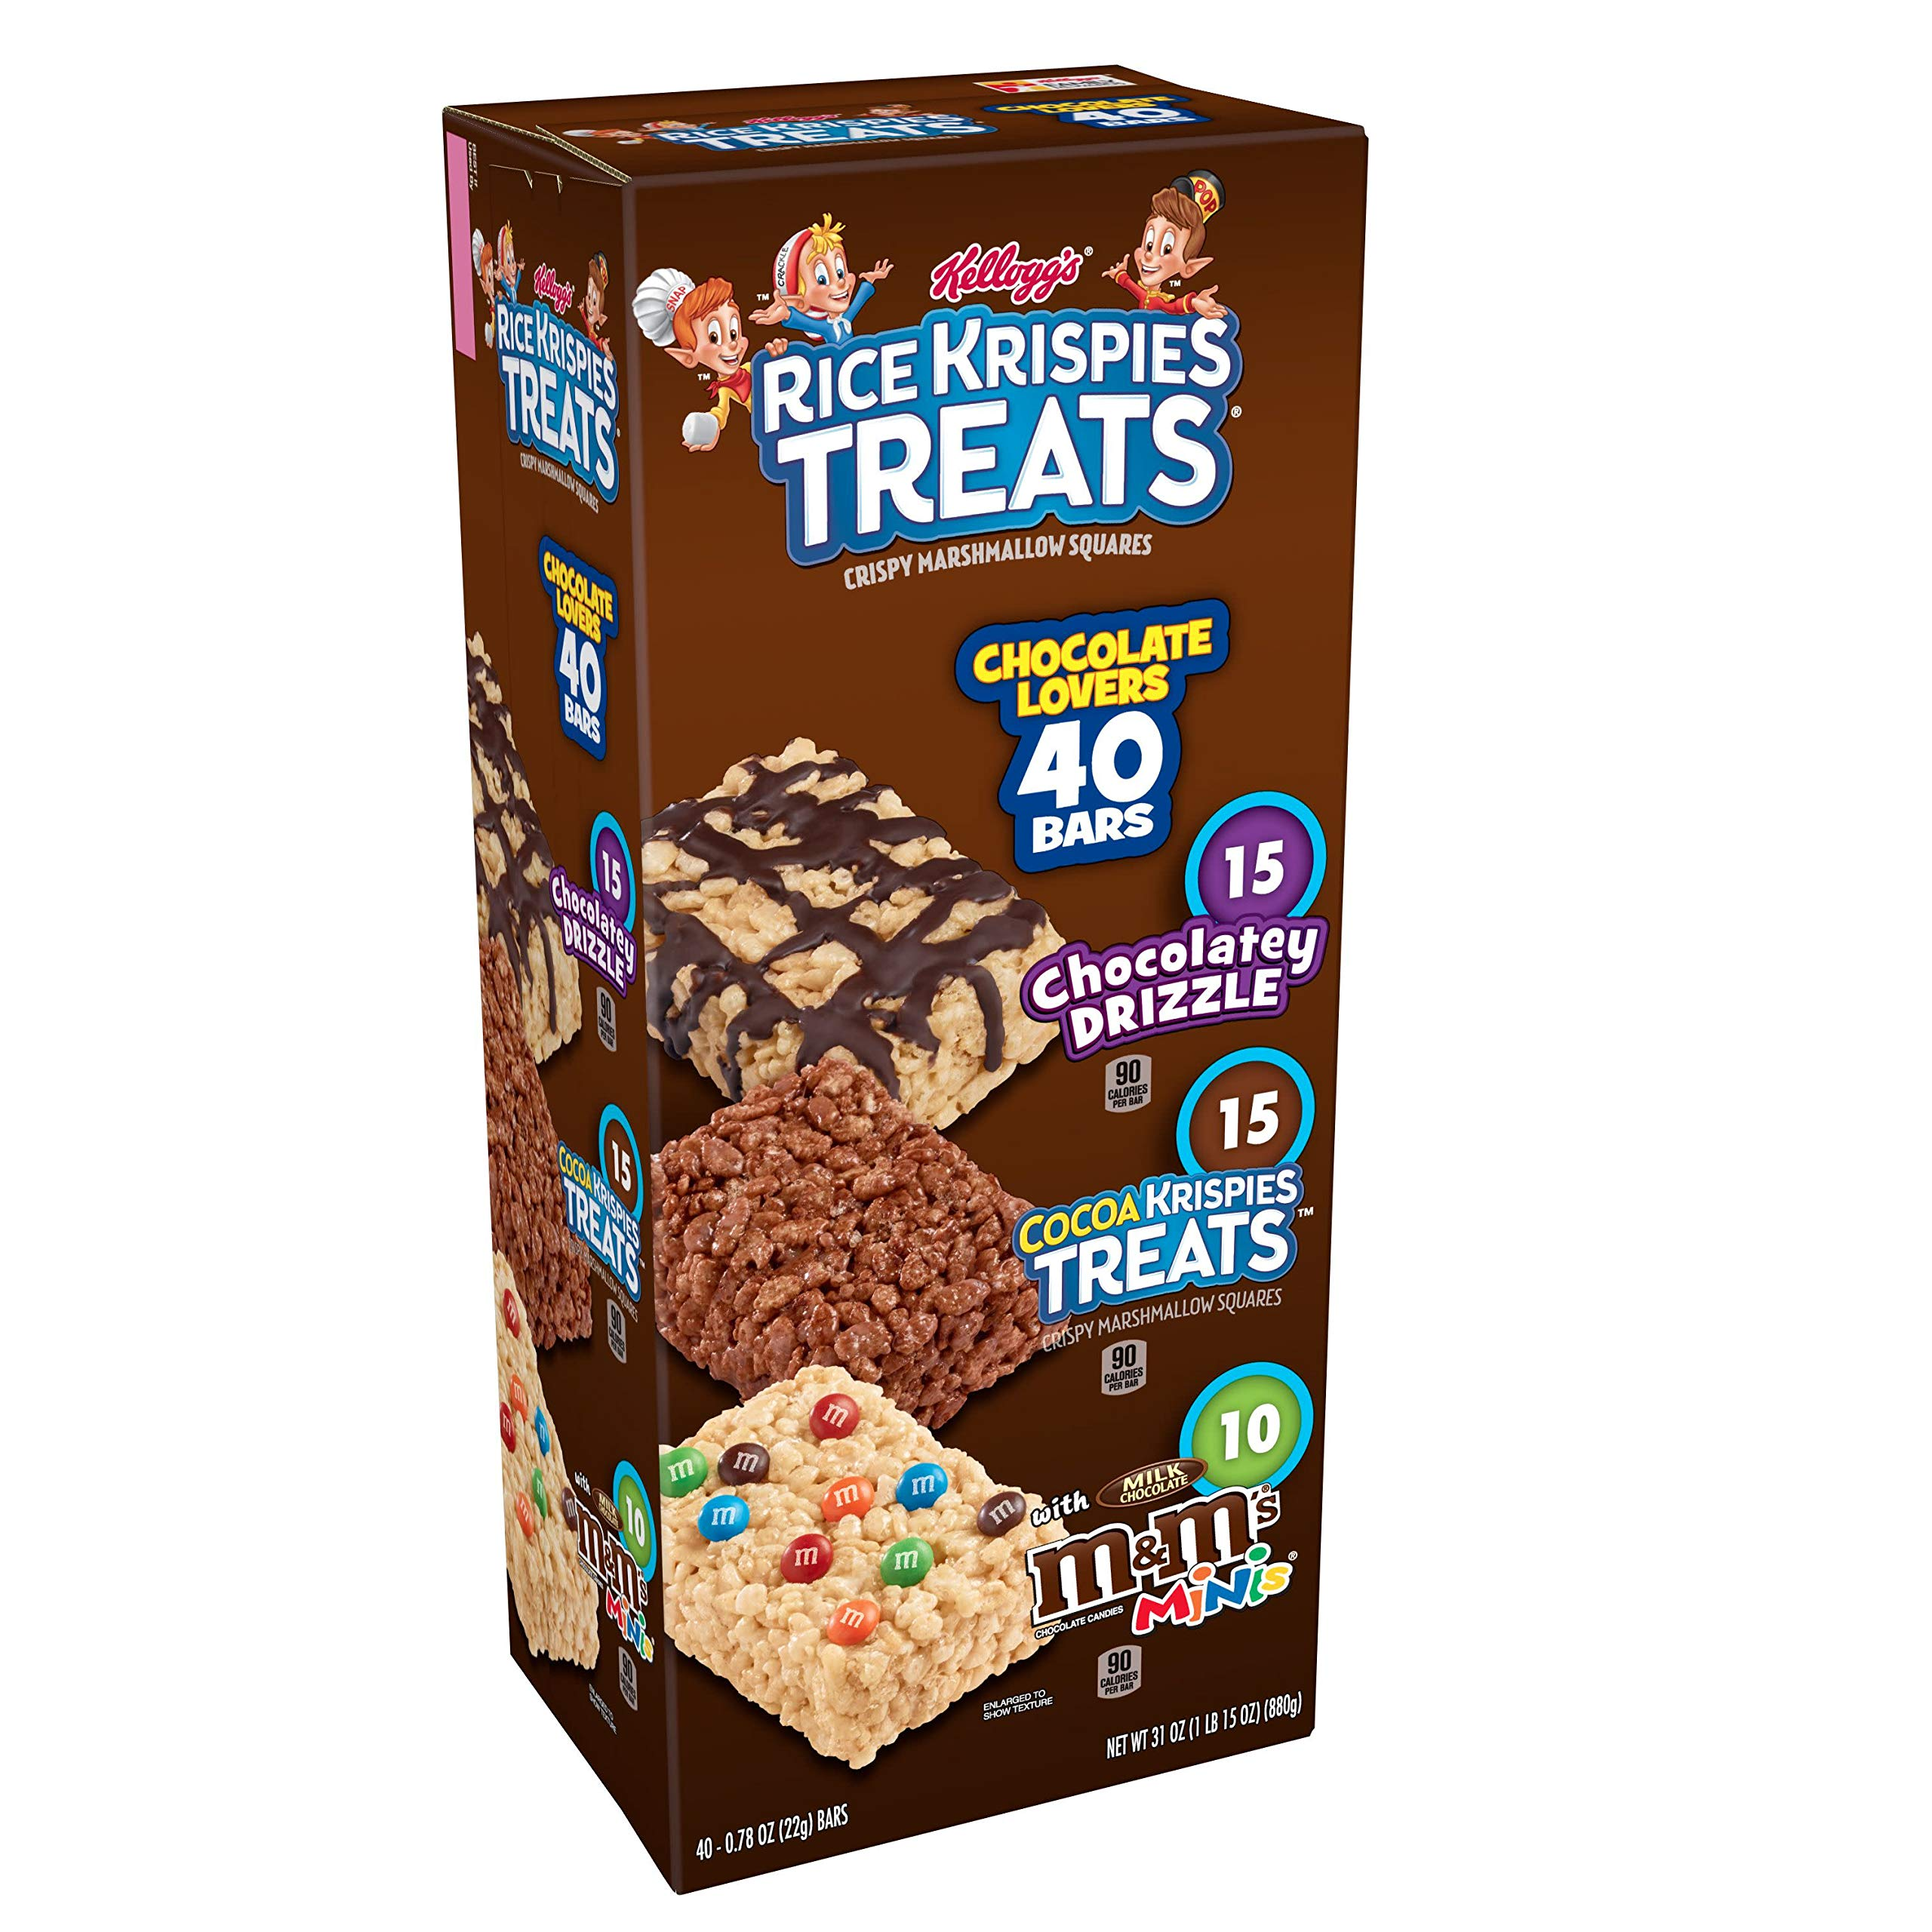 Kellogg's Rice Krispies Treats, Crispy Marshmallow Squares, Chocolate Lovers Variety Pack, Single Serve, 0.78 oz Bars (40 Count) by Rice Krispies (Image #1)